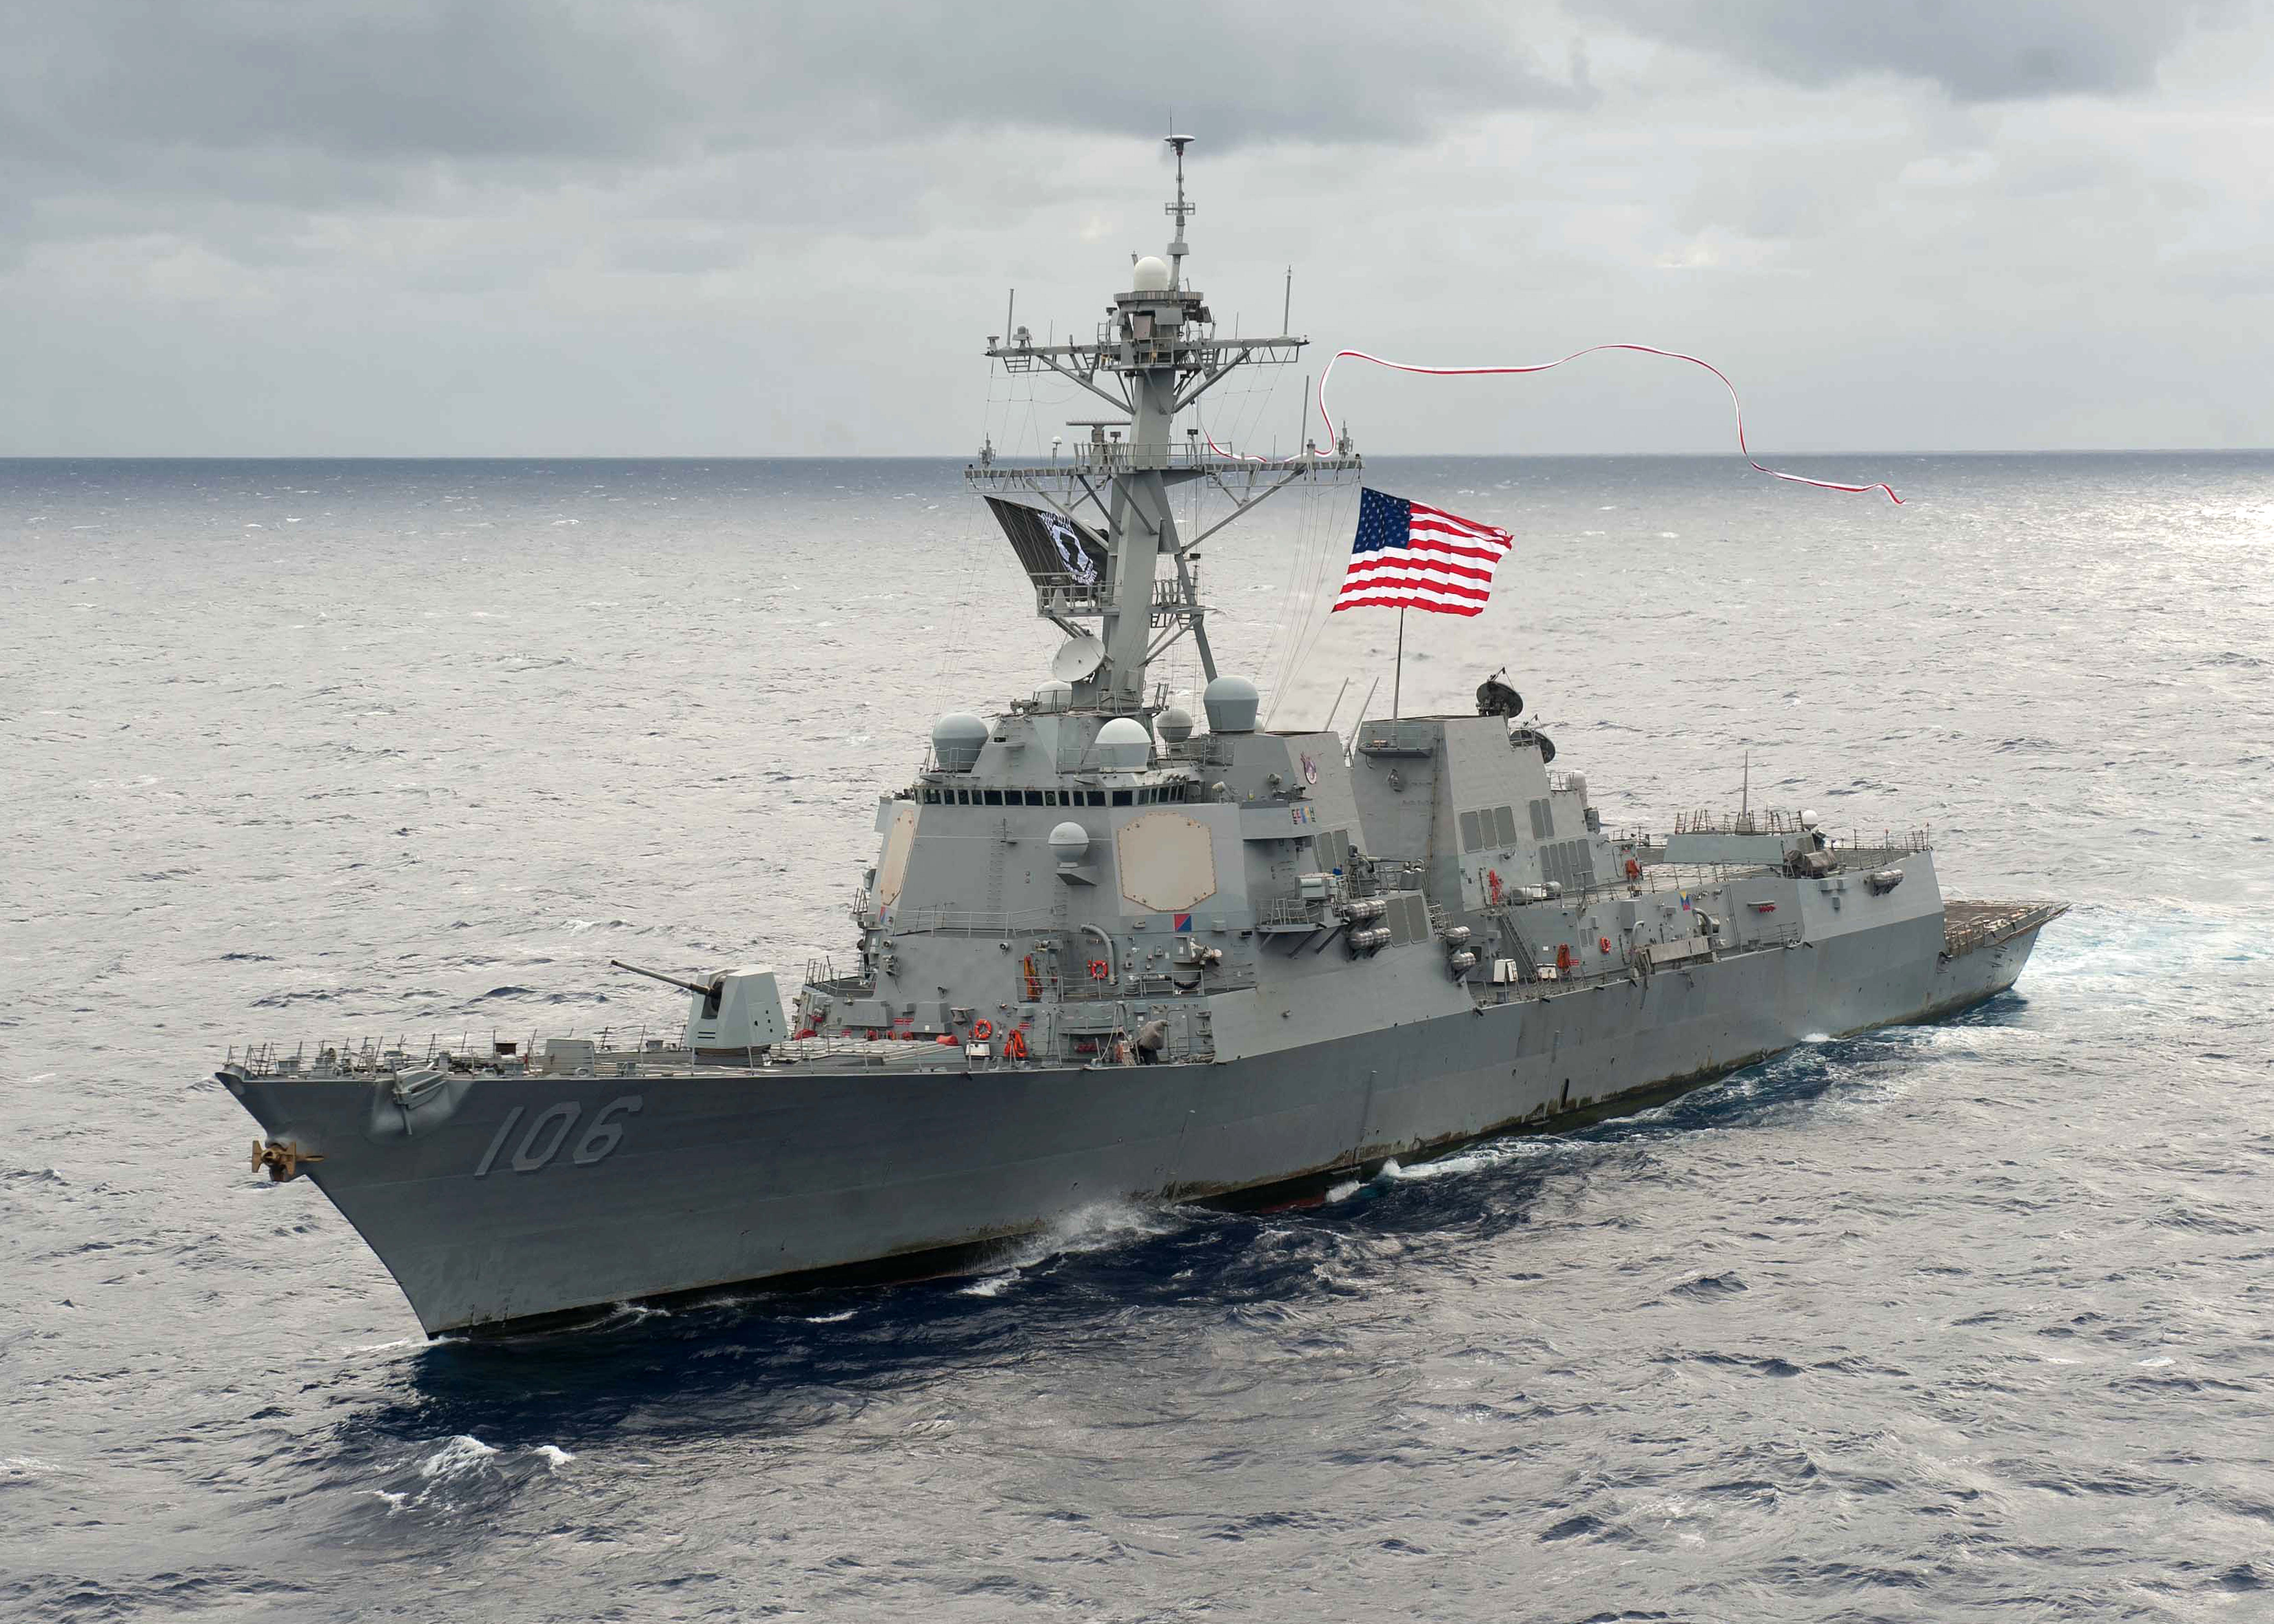 DDG 51 Arleigh Burke Class Destroyer 006